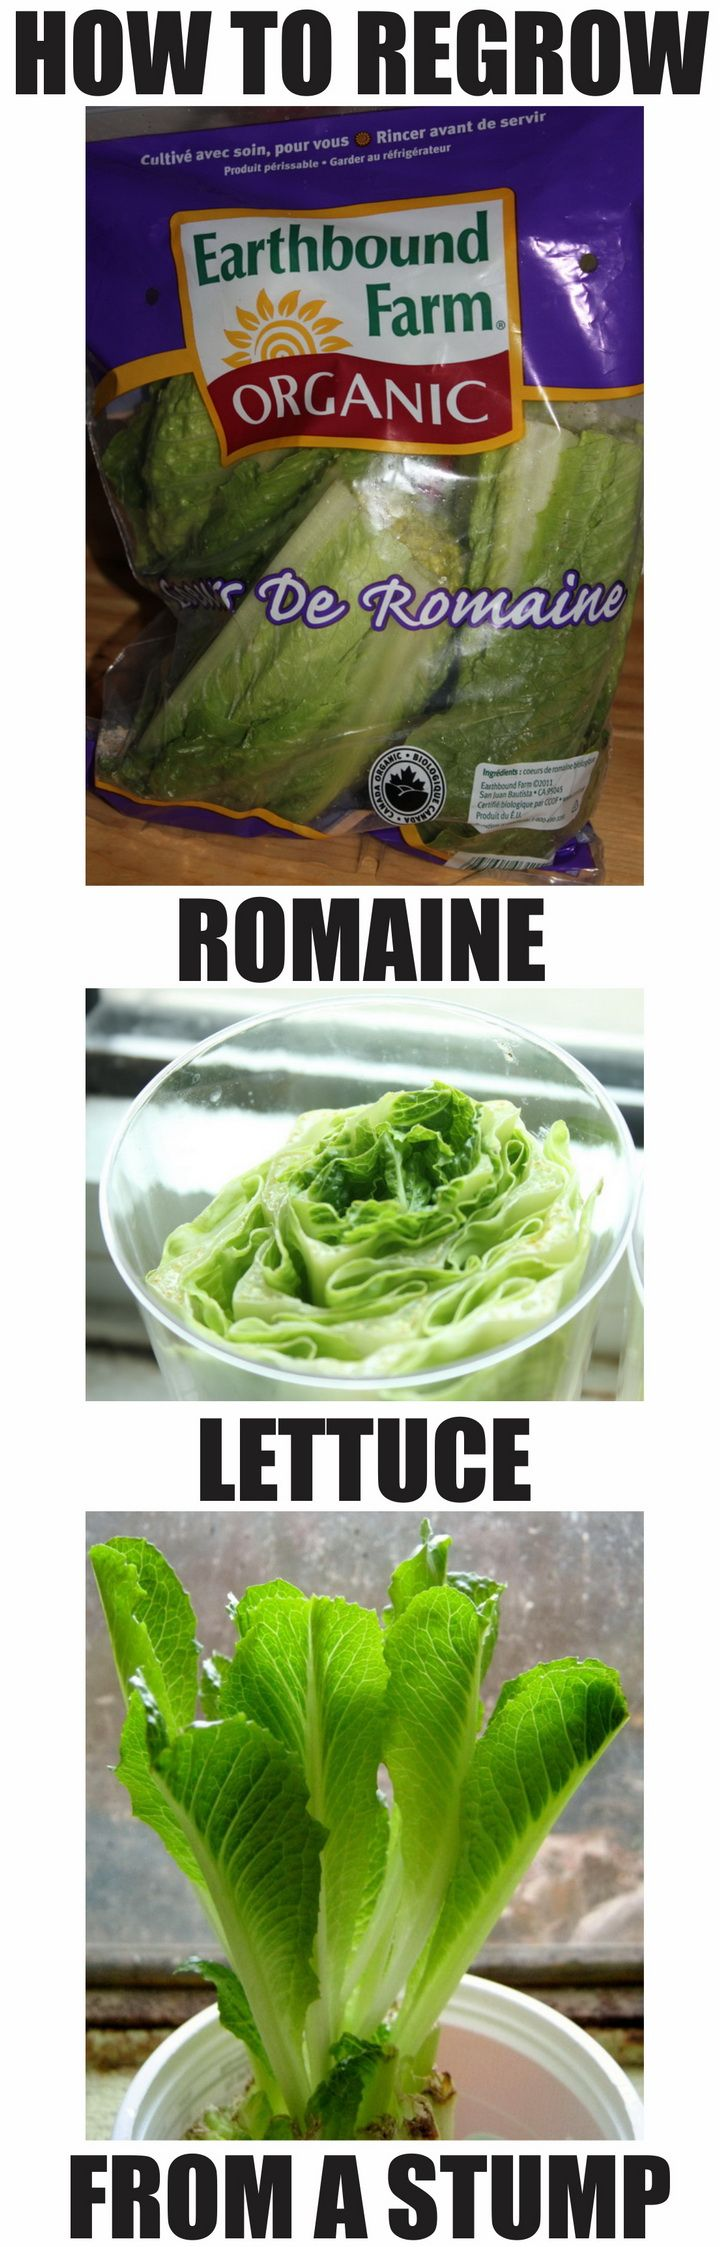 Indoor Gardening Projects • Ideas and Tutorials! Including this project, from 'remove & replace', learn how to regrow romaine lettuce from a stump.